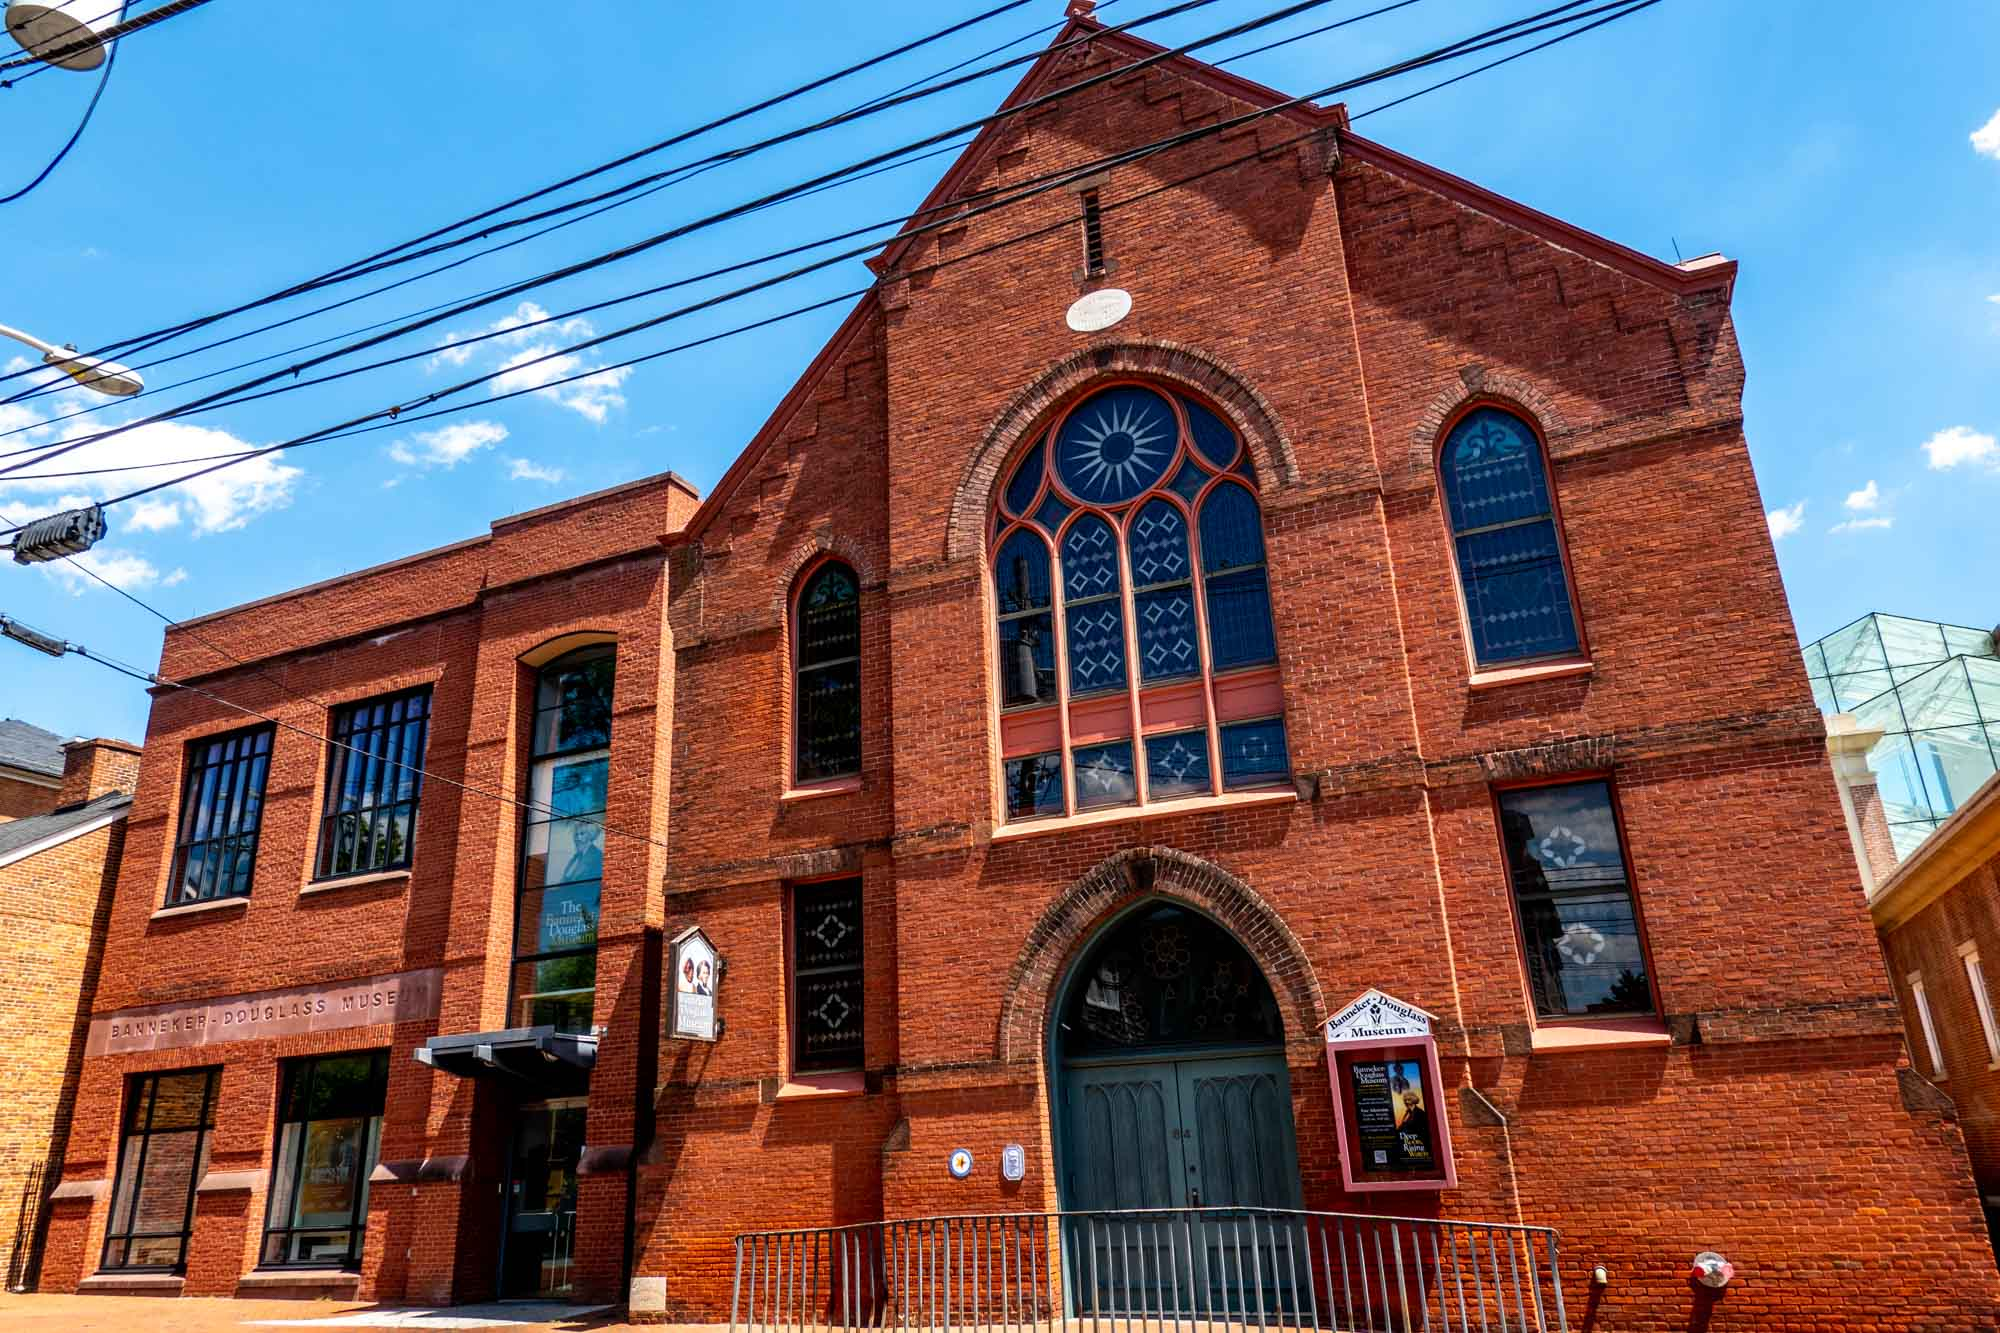 Exterior of a red brick church with stained glass windows